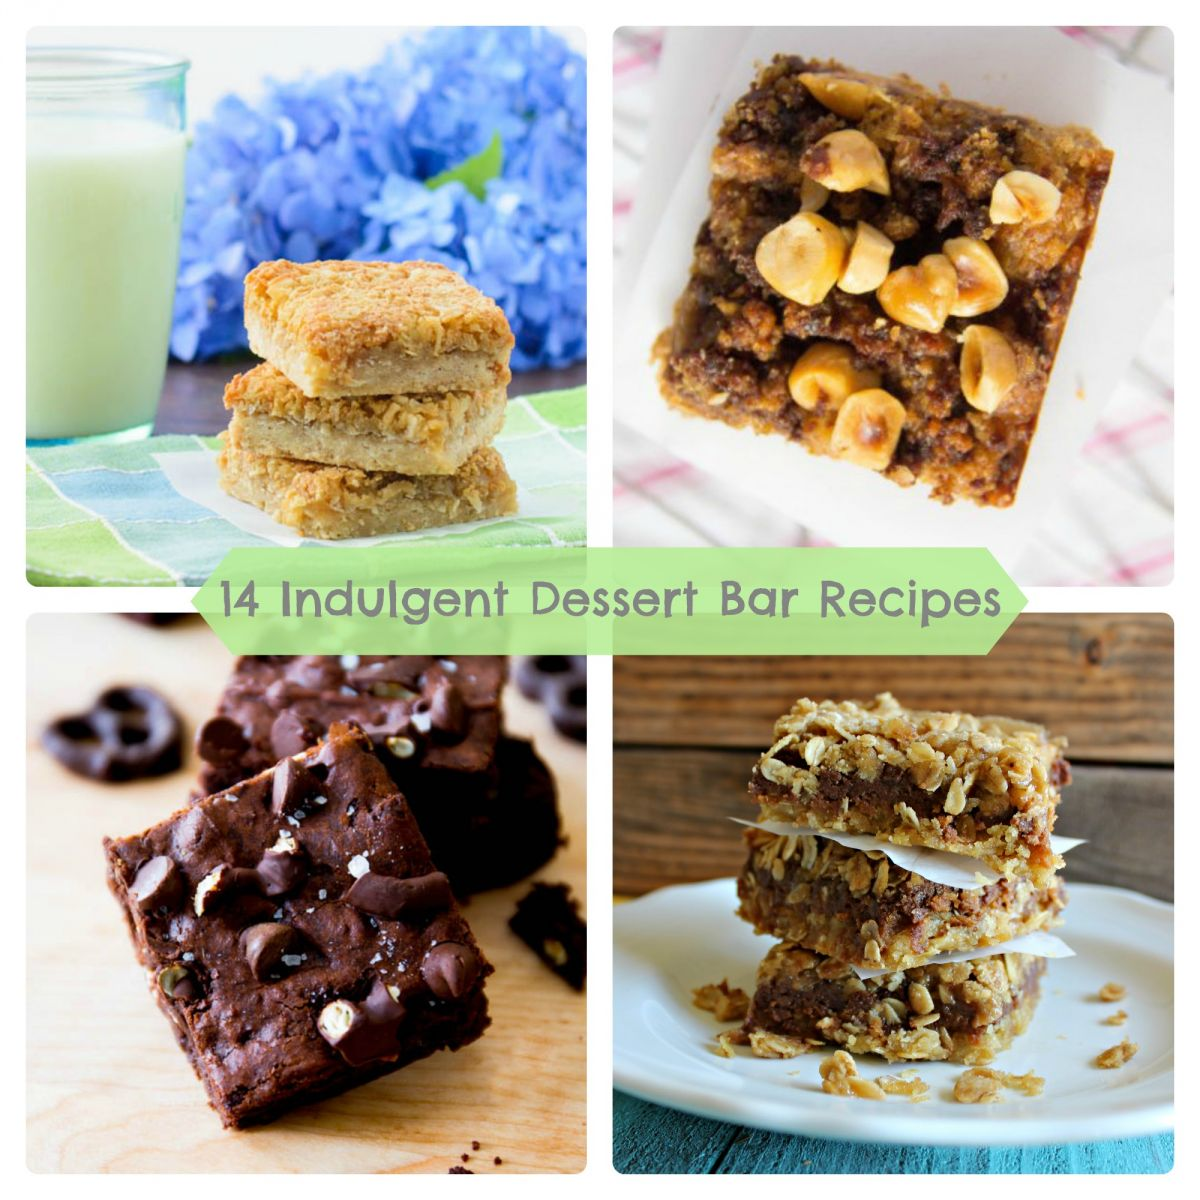 14 Indulgent and Delectable Dessert Bar Recipes